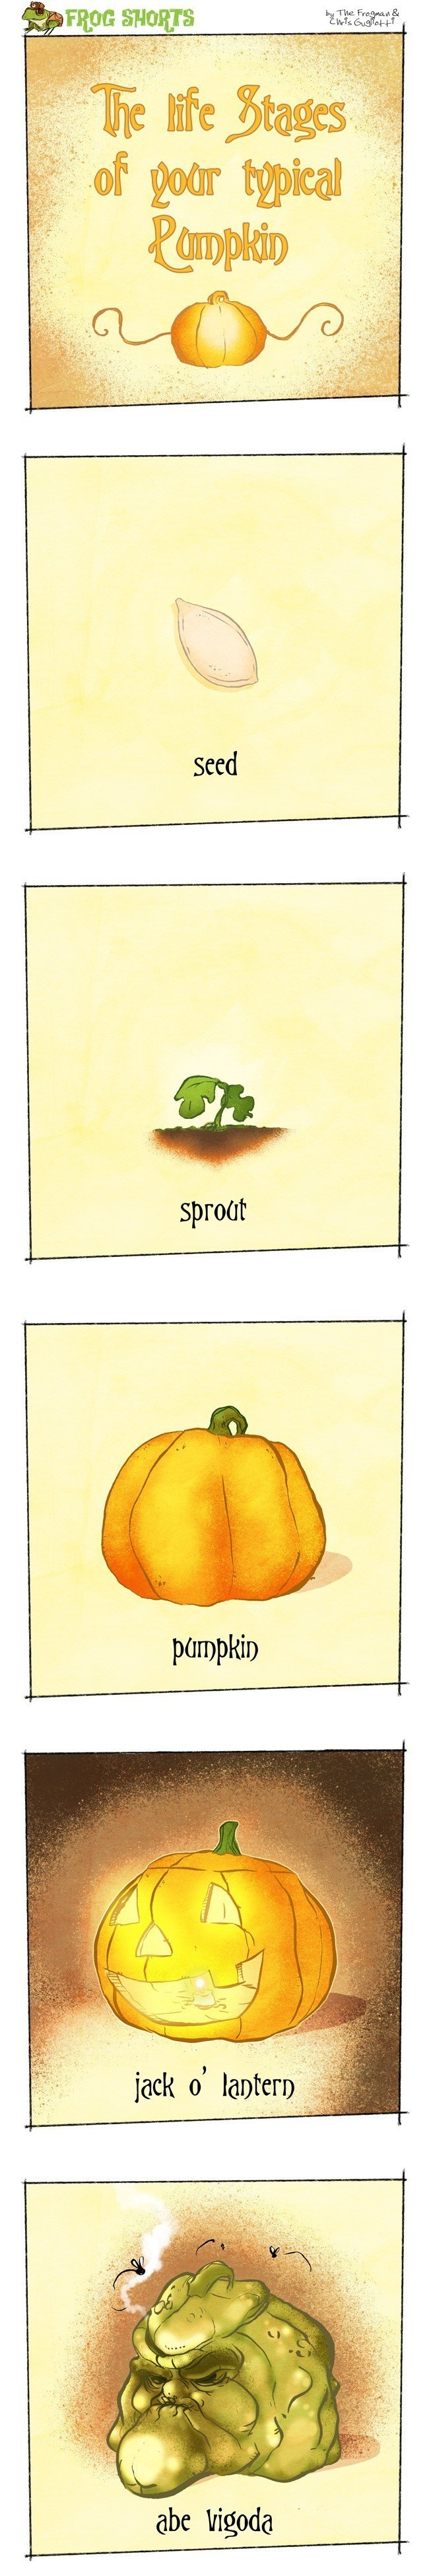 Frog Shorts Pumpkin